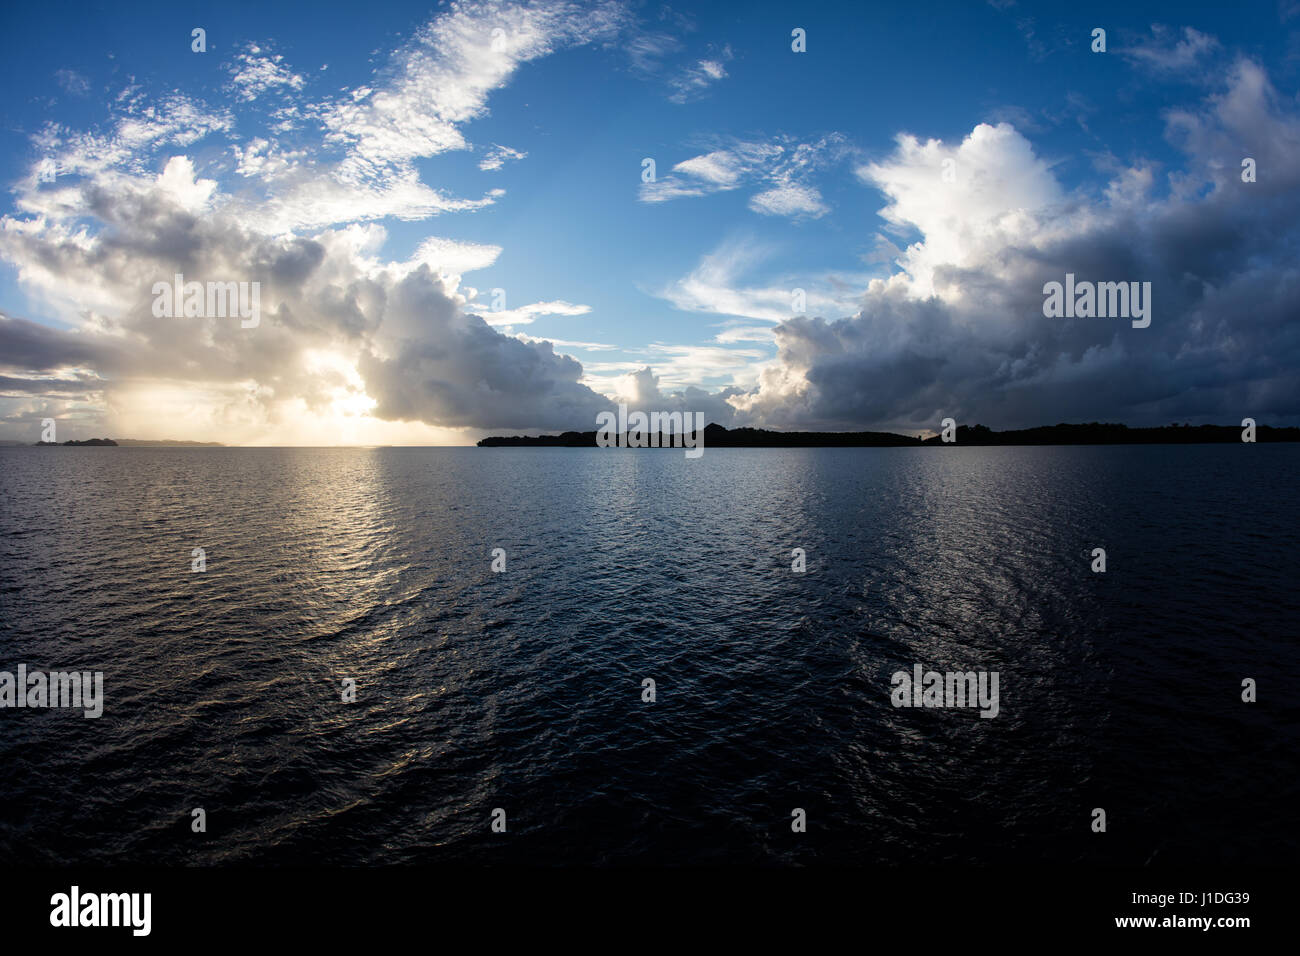 A beautiful sunrise appears over tropical lagoon waters in the Republic of Palau. This Micronesian country is a - Stock Image